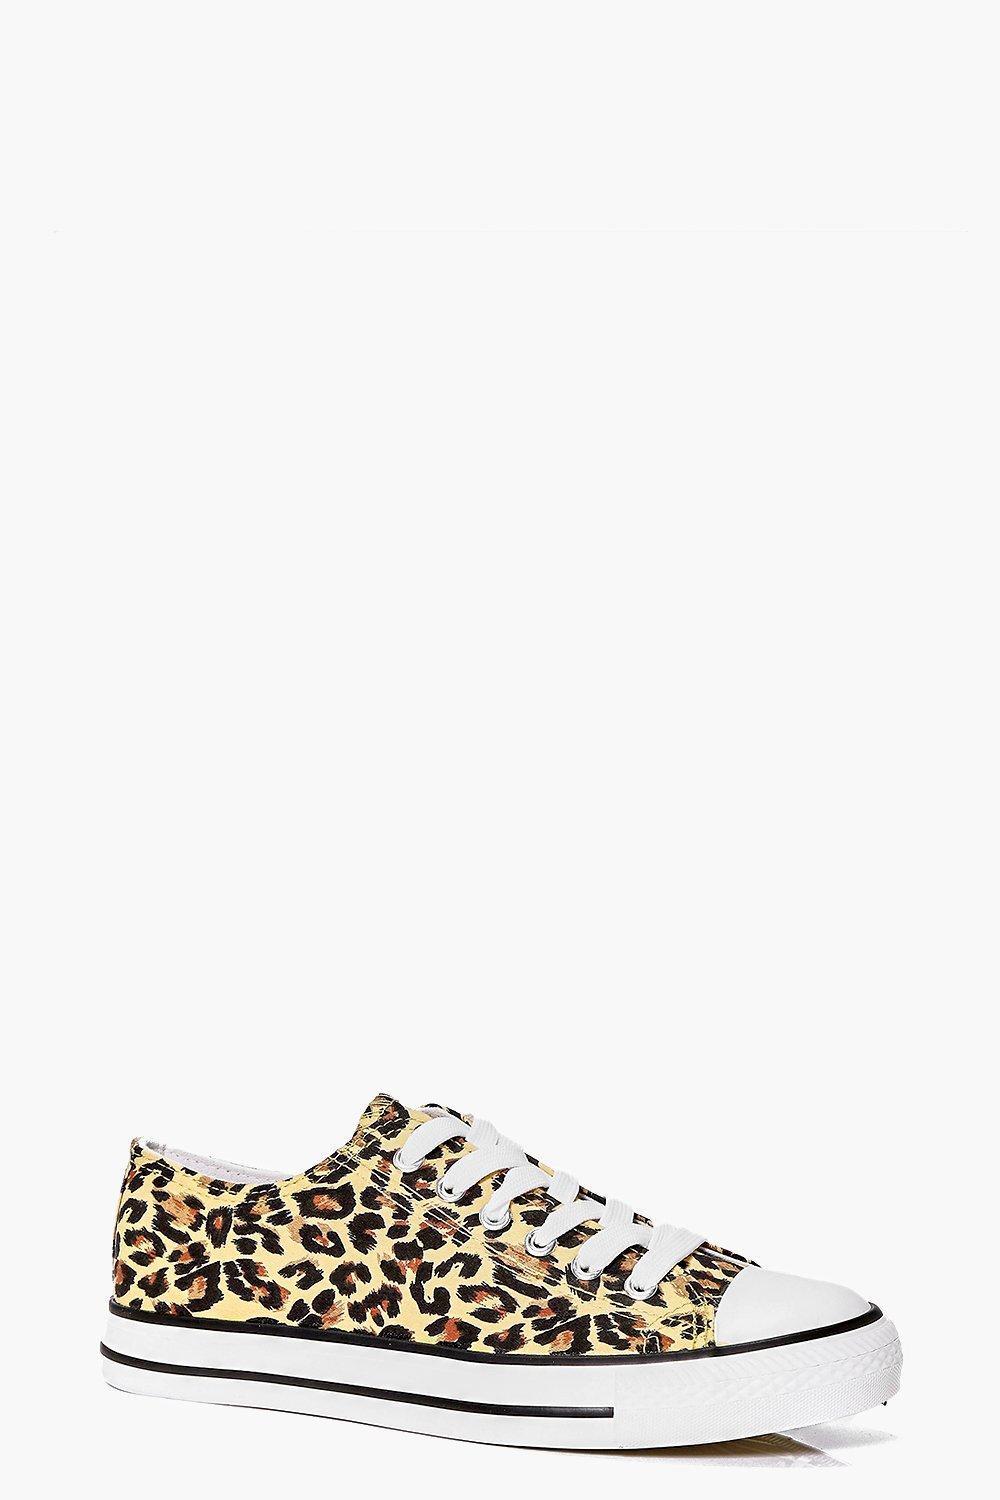 Leopard Print Lace Up Canvas Flat leopard